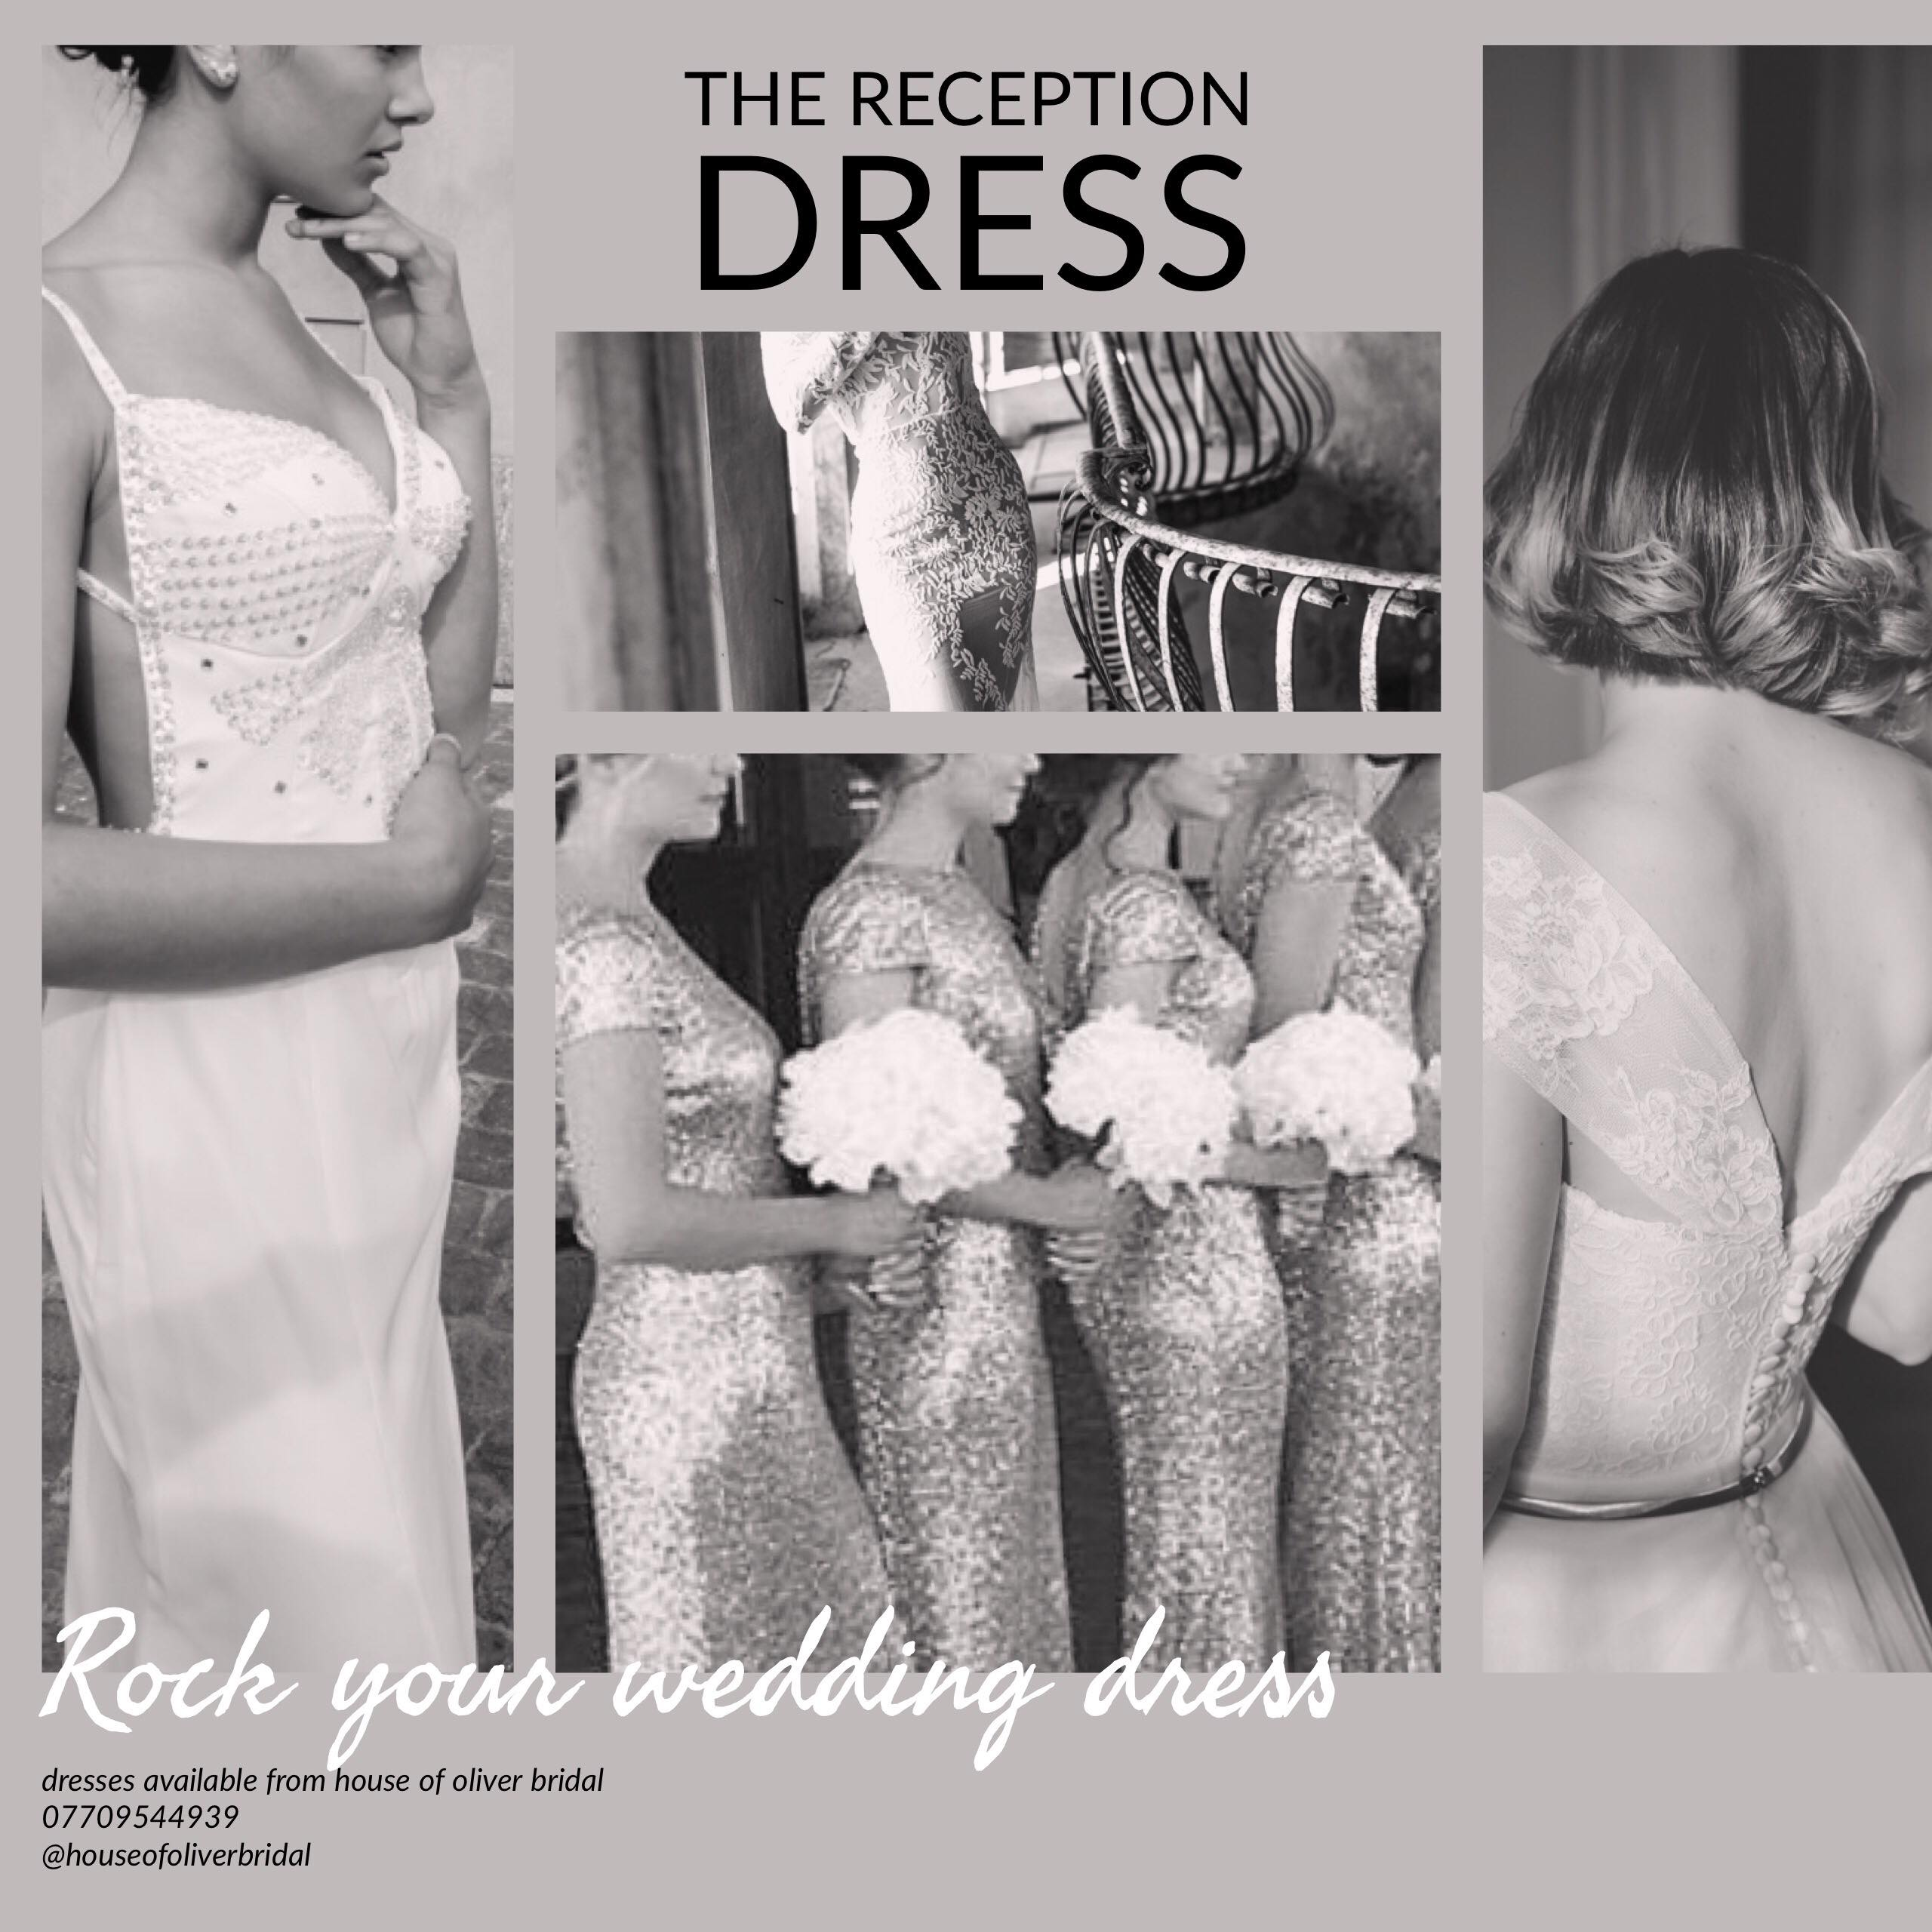 73d313 df4401fca9504ebb9db4e0f8cda66c98mv2 d 2560 2560 s 4 2 - Different ways to Rock your Wedding Dress